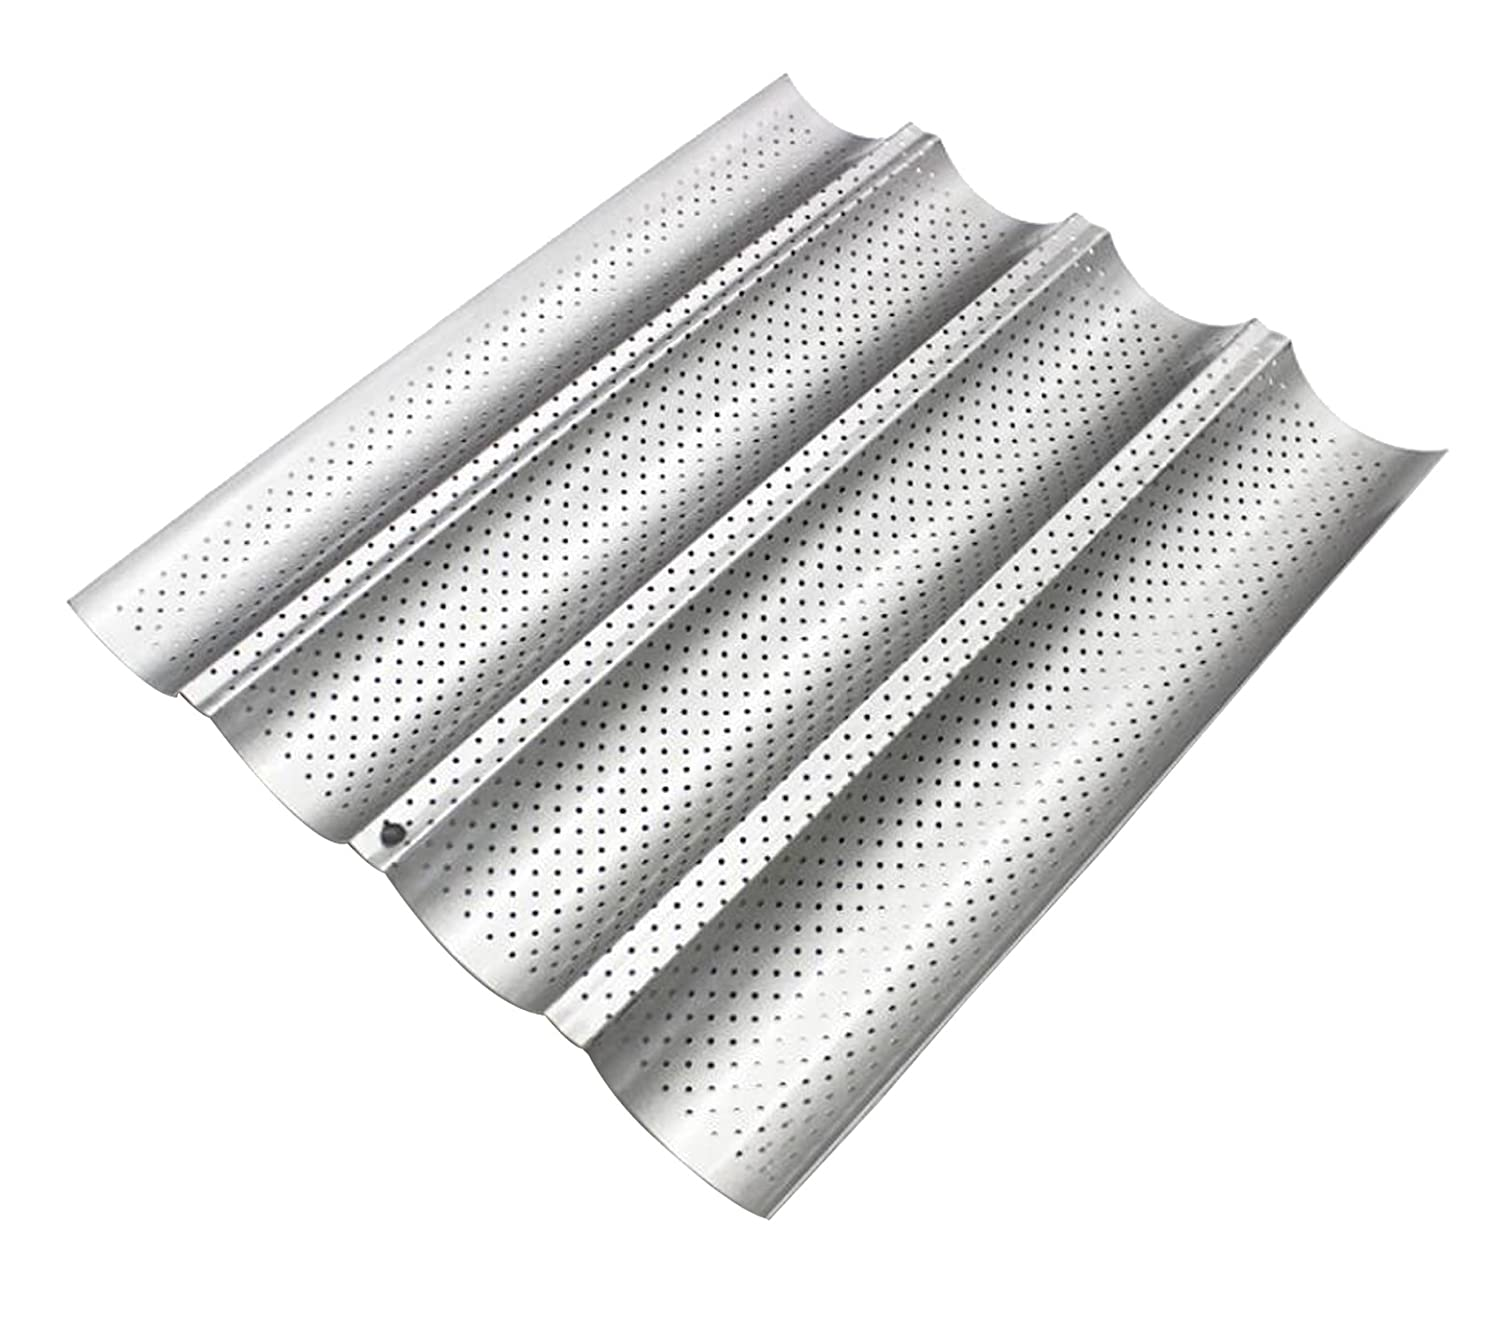 Four Groove French Bread Pan, KOOTIPS Non-stick Perforated Baguette Pan French Italian Bread Pan Wave Loaf Bake Mold Board Subway Mold Tins Basket Tray Cloche Molds Pans Sheet Baker Baking (Silver) Kootips-1-622